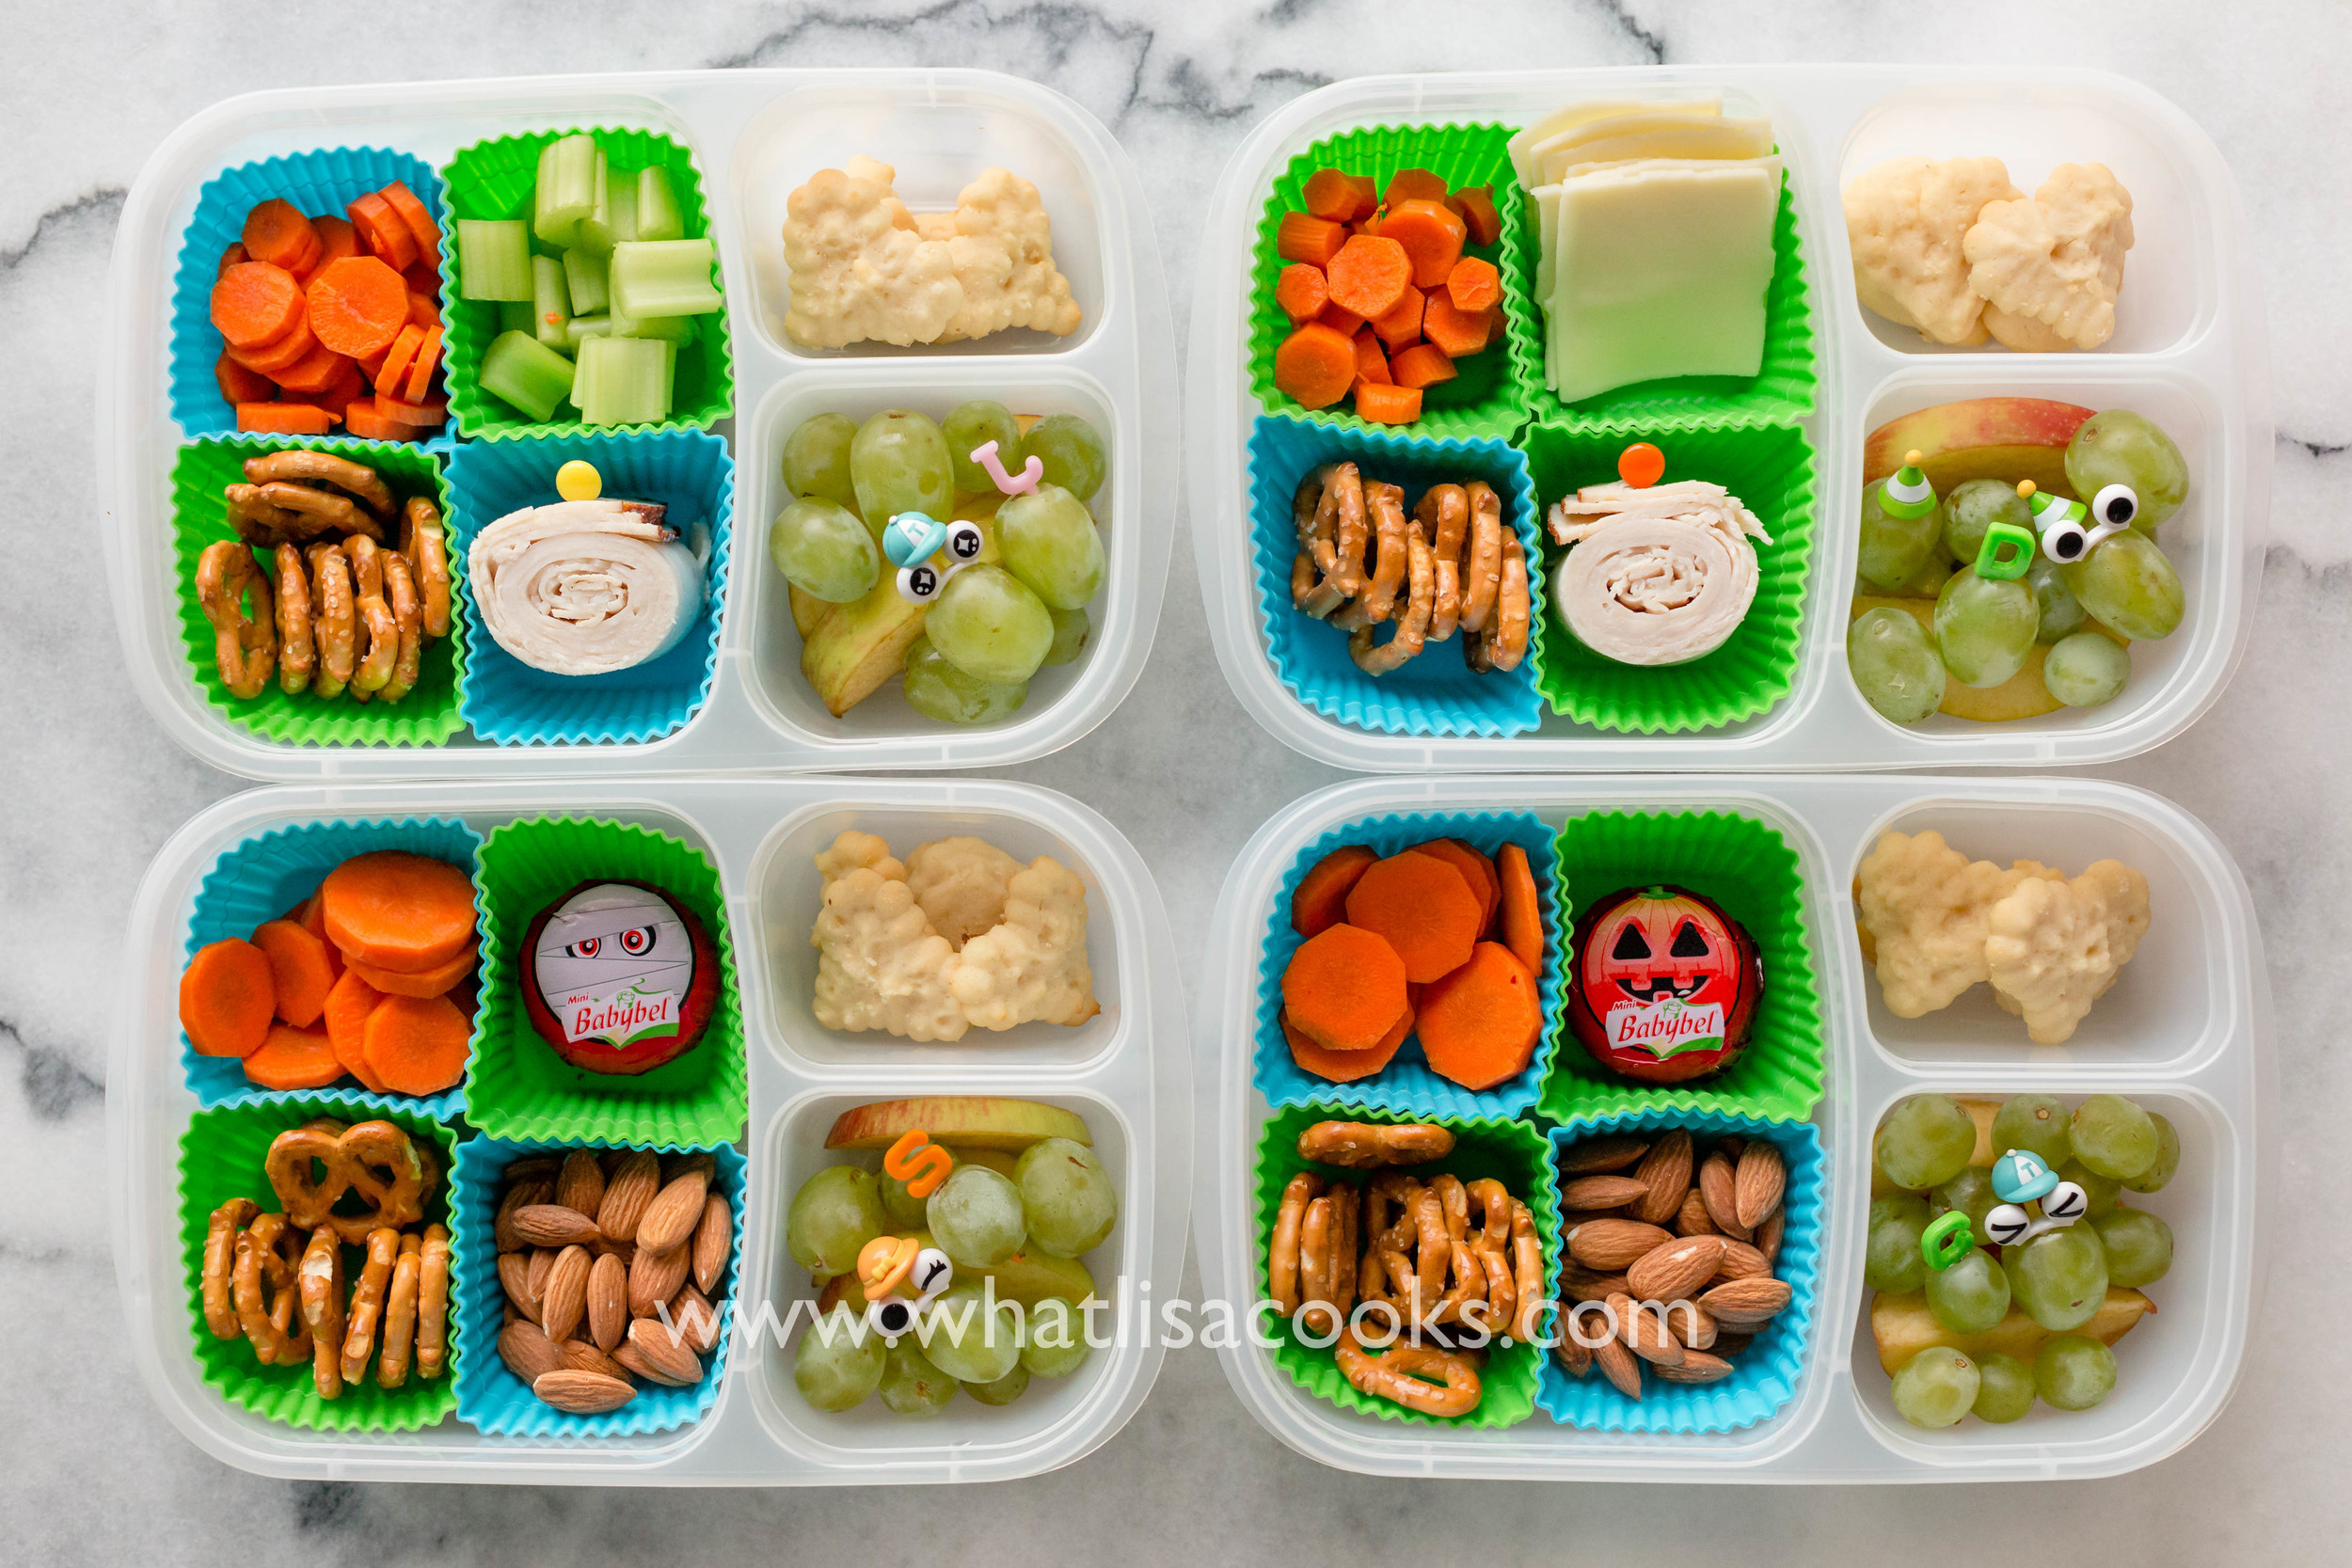 School Lunch Day 24 - simple snack box